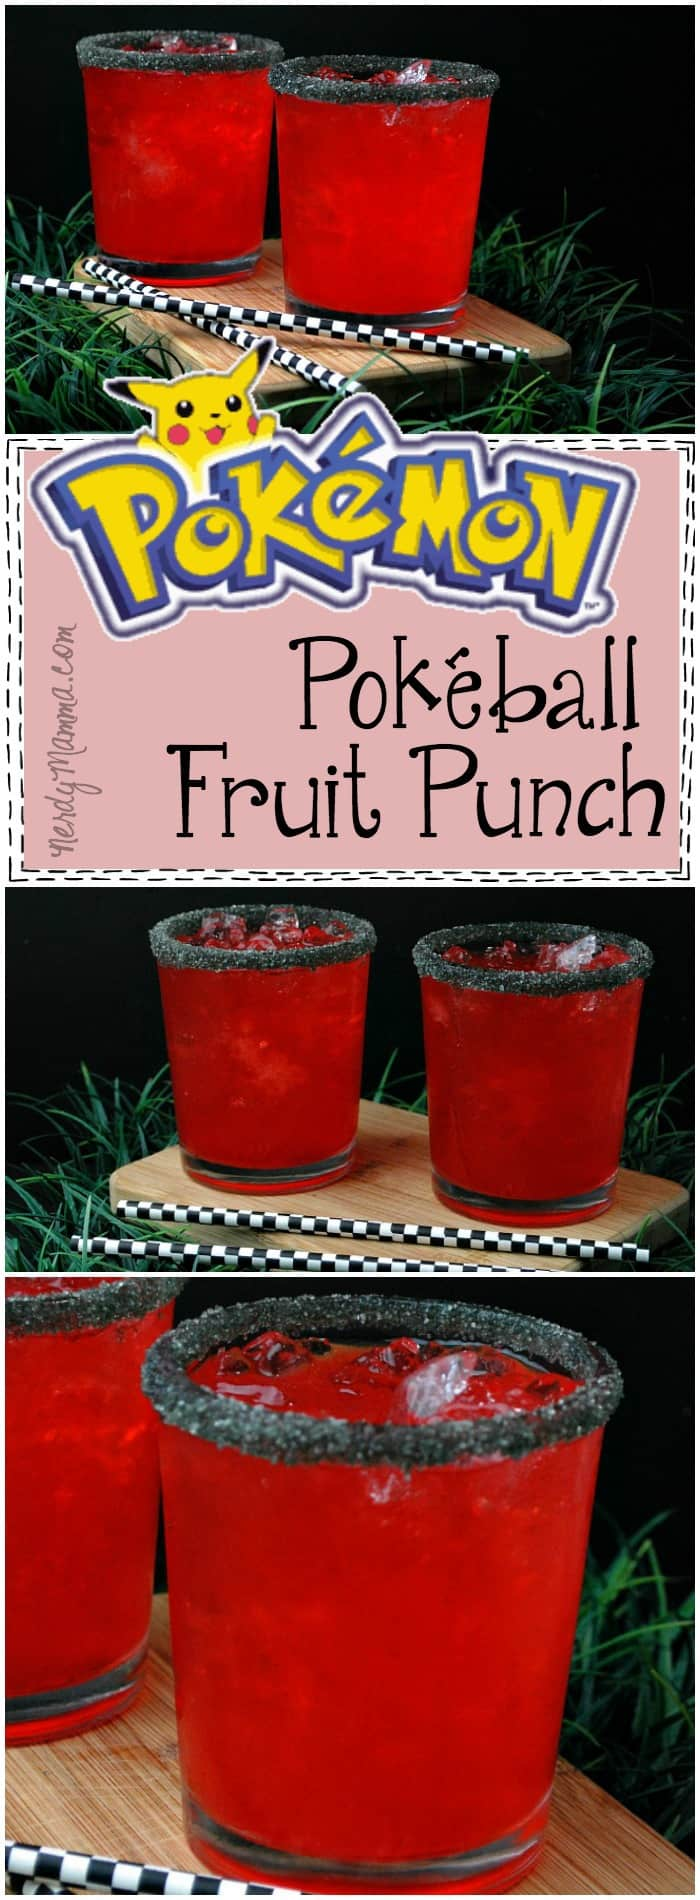 OMG! This is the BEST recipe! A Pokeball Fruit Punch?! Awesome. So simple--and sounds so yummy. I can't wait to make it for my next Pokemon Go! party!